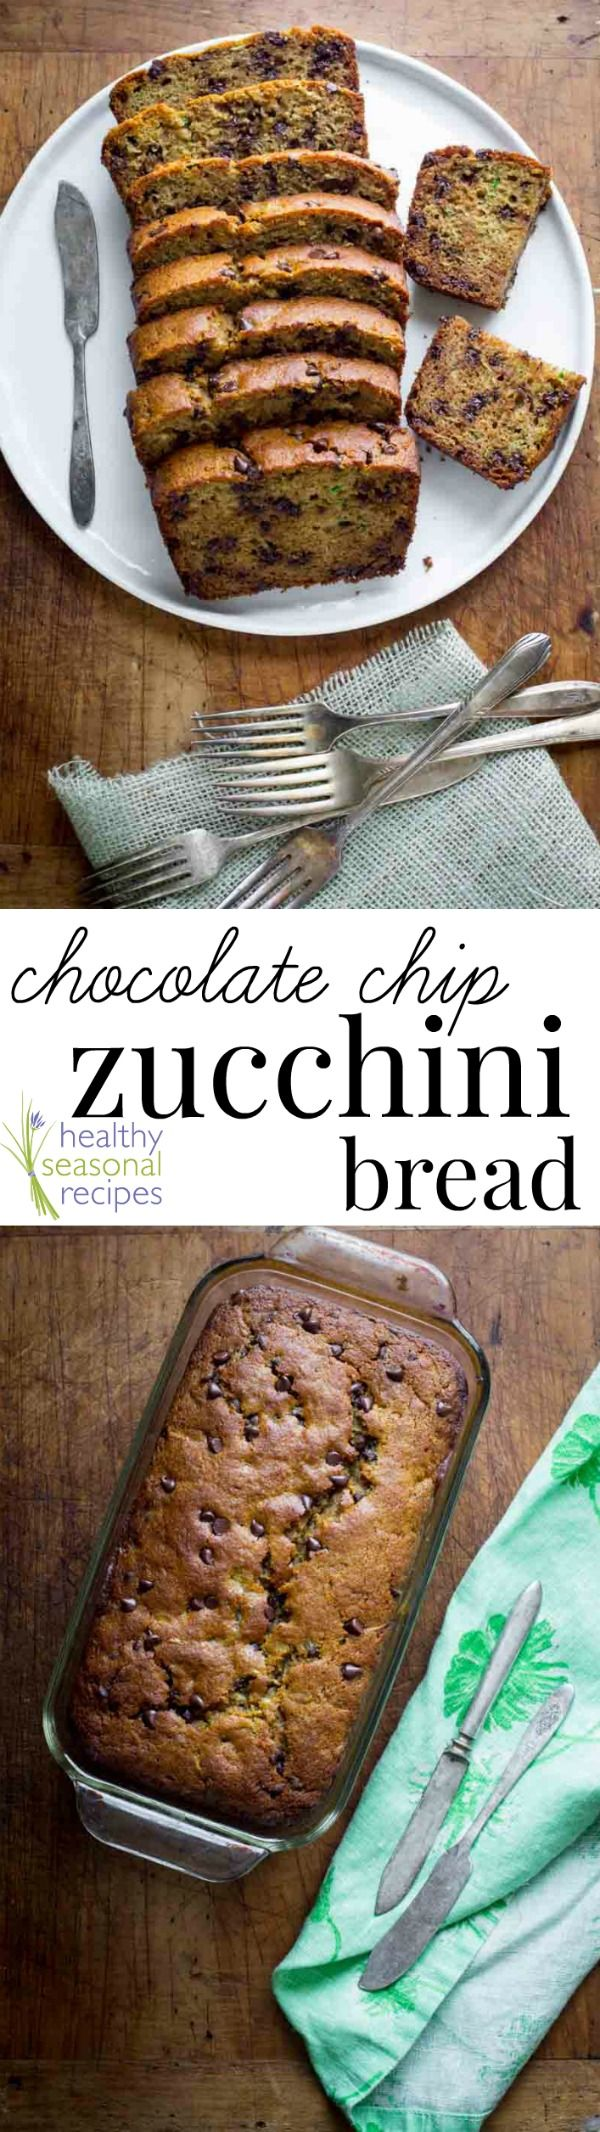 chocolate chip zucchini bread - Healthy Seasonal Recipes